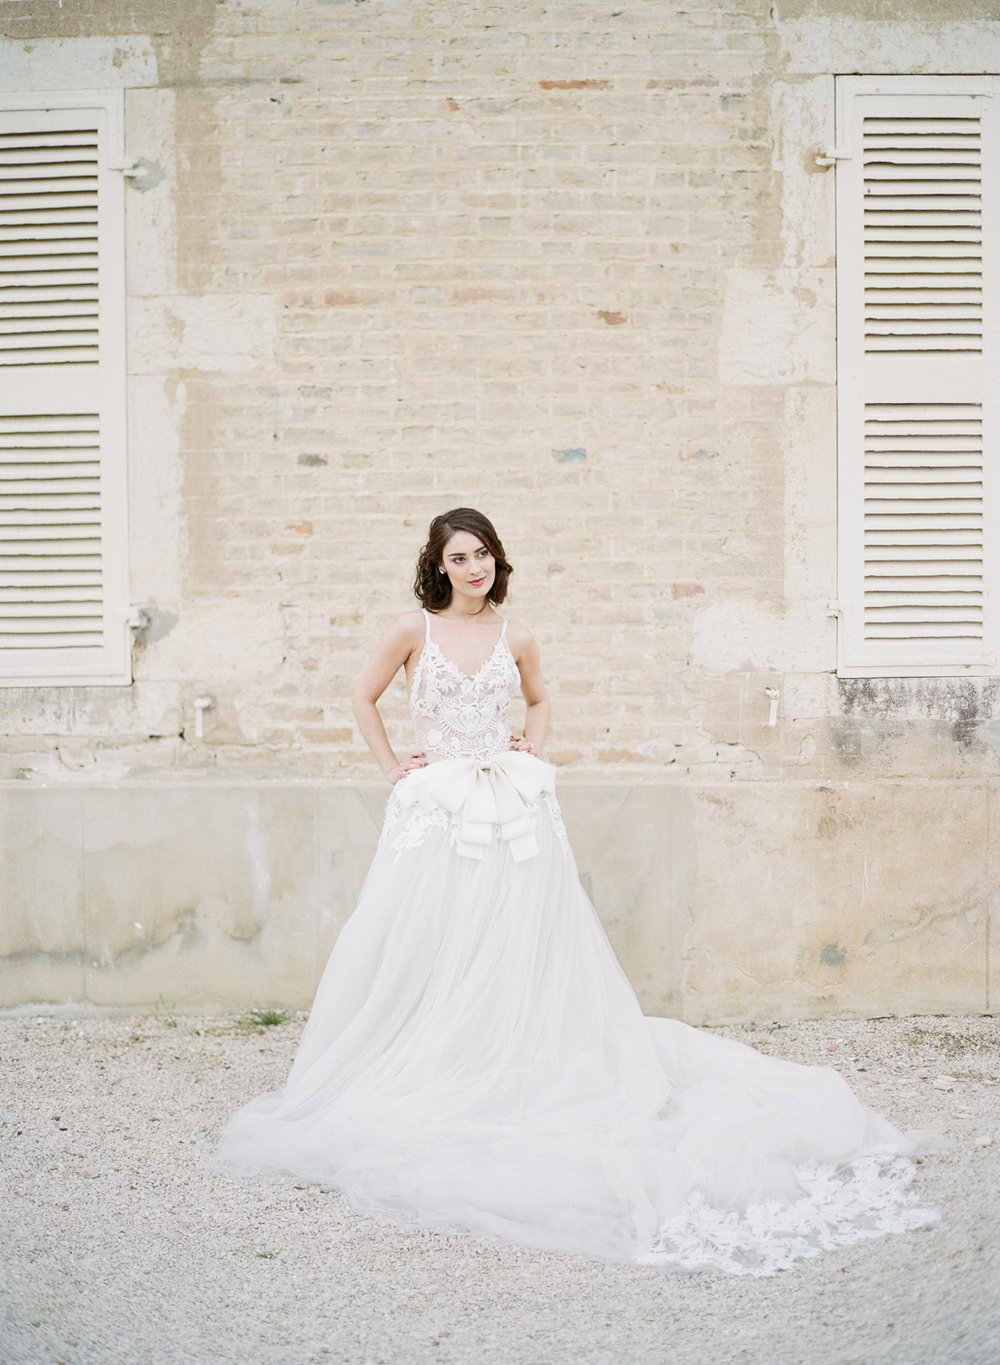 The bride poses in a dreamy Vera Wang gown in front of Chateau de Varennes; photo by Sylvie Gil